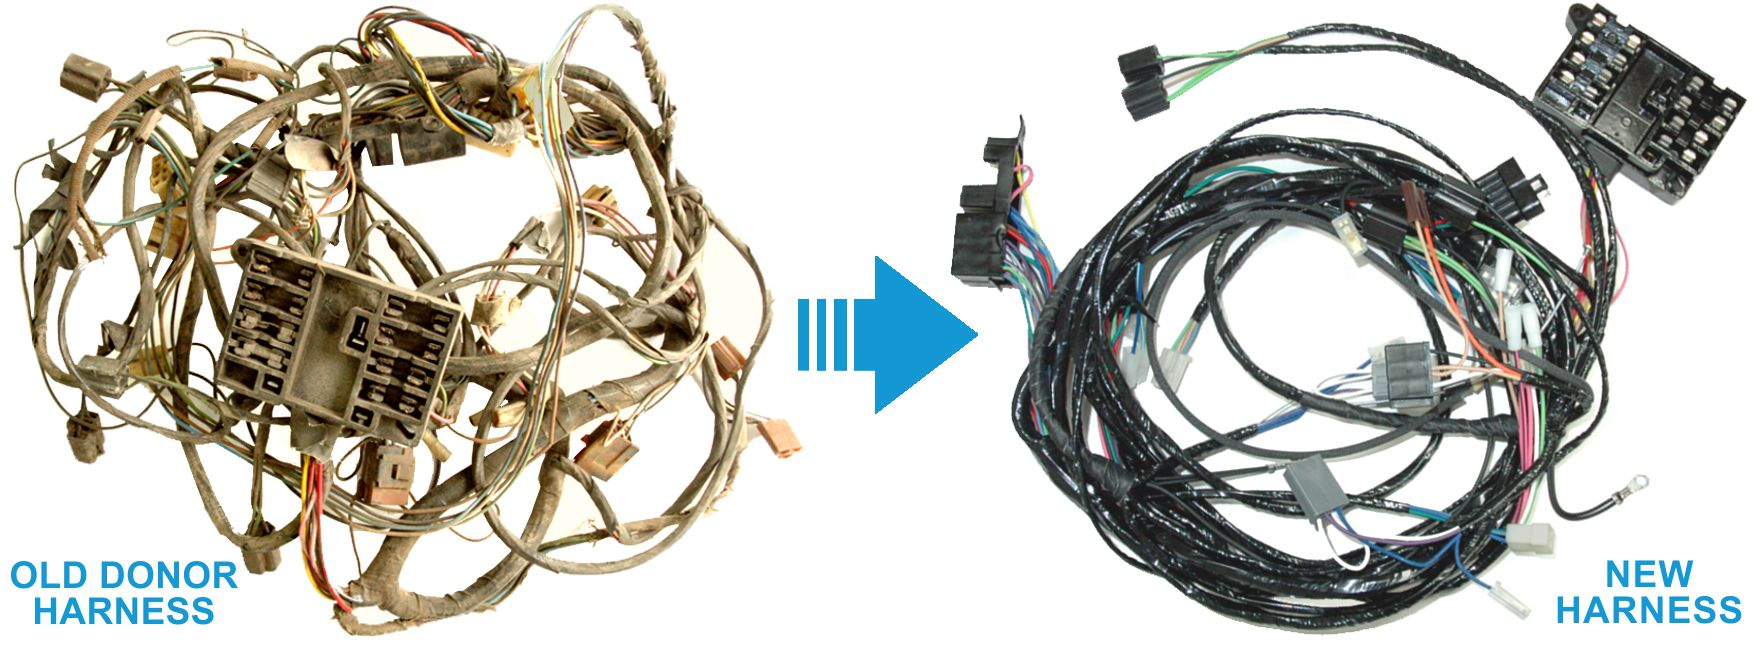 Wiring Harness For Vintage Cars : Exact oem reproduction wiring harnesses for classic